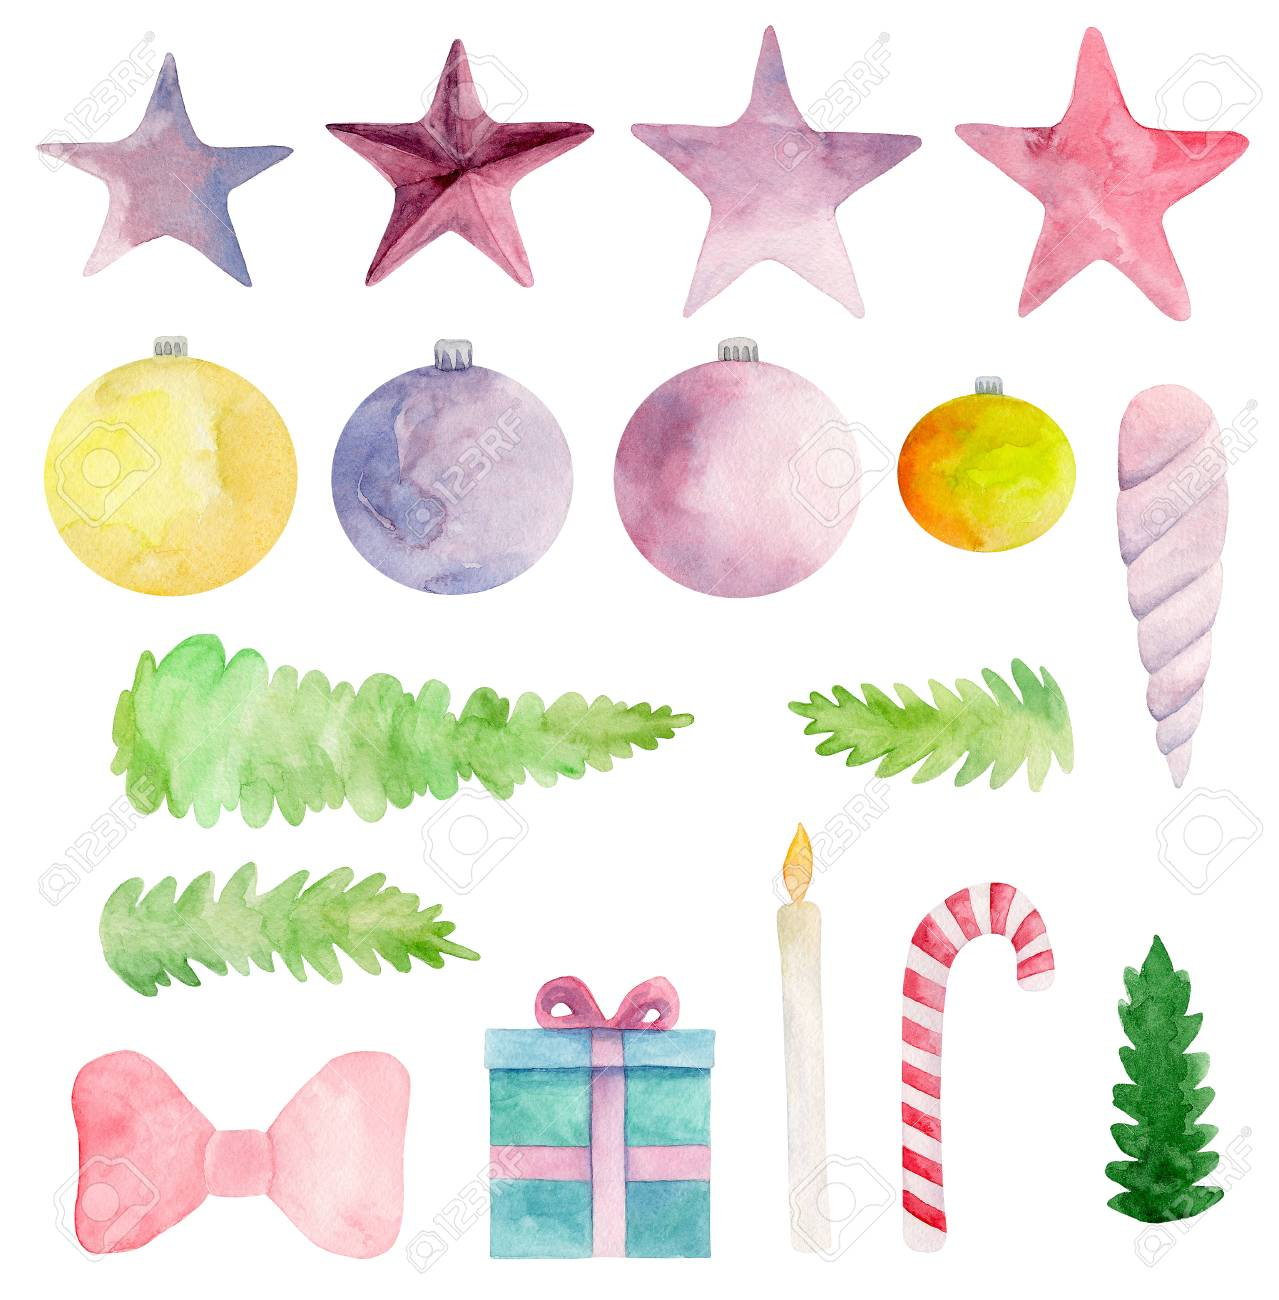 Watercolor Christmas clip art. New year clipart. Winter holiday...